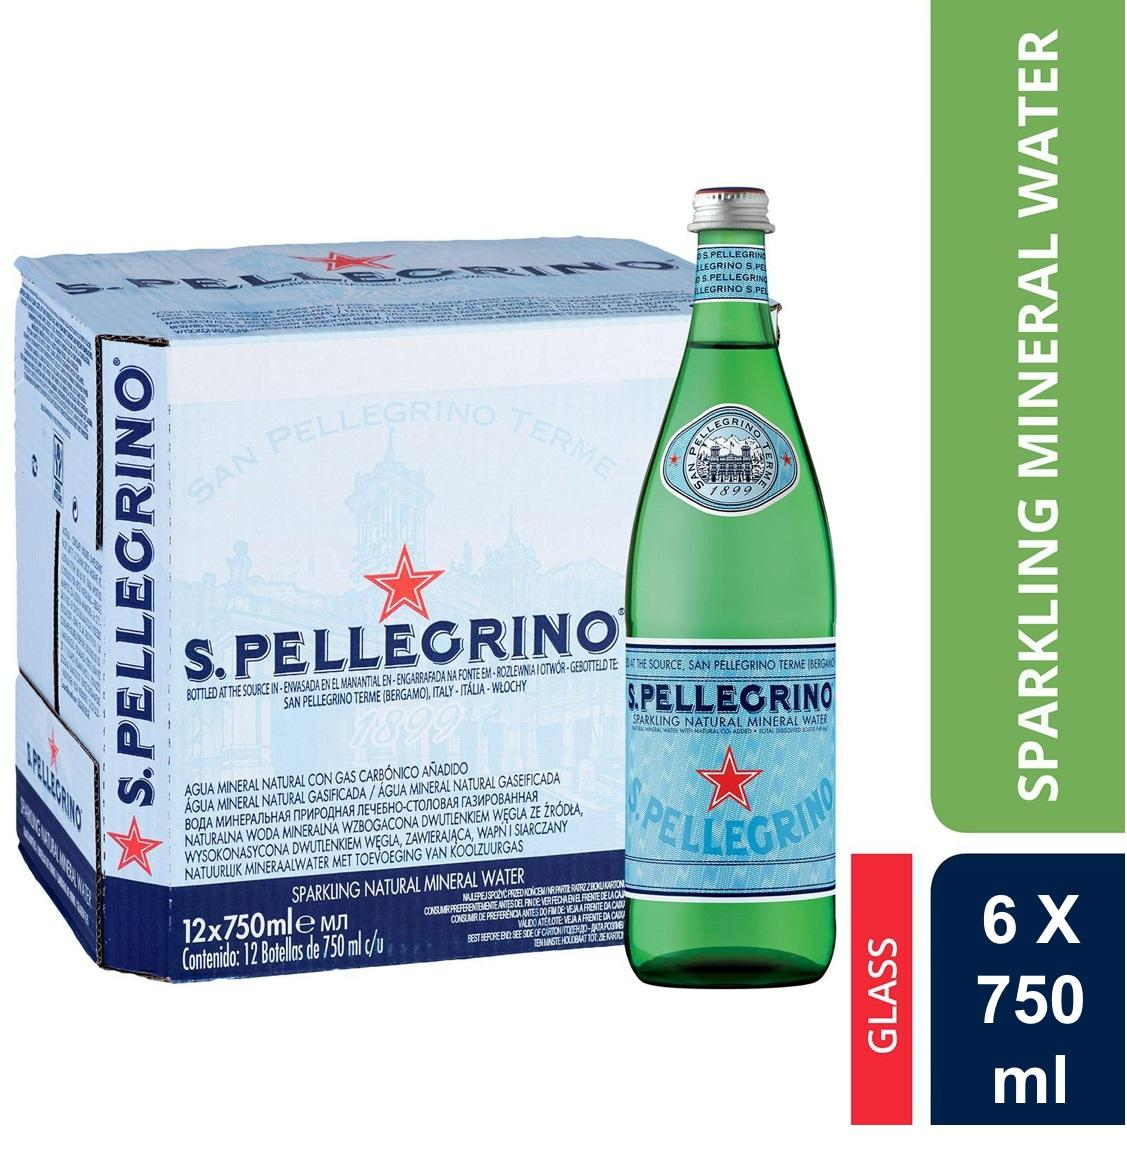 San Pellegrino Sparkling Natural Mineral Water 750ml 6 Bottles By Eolo Inc..